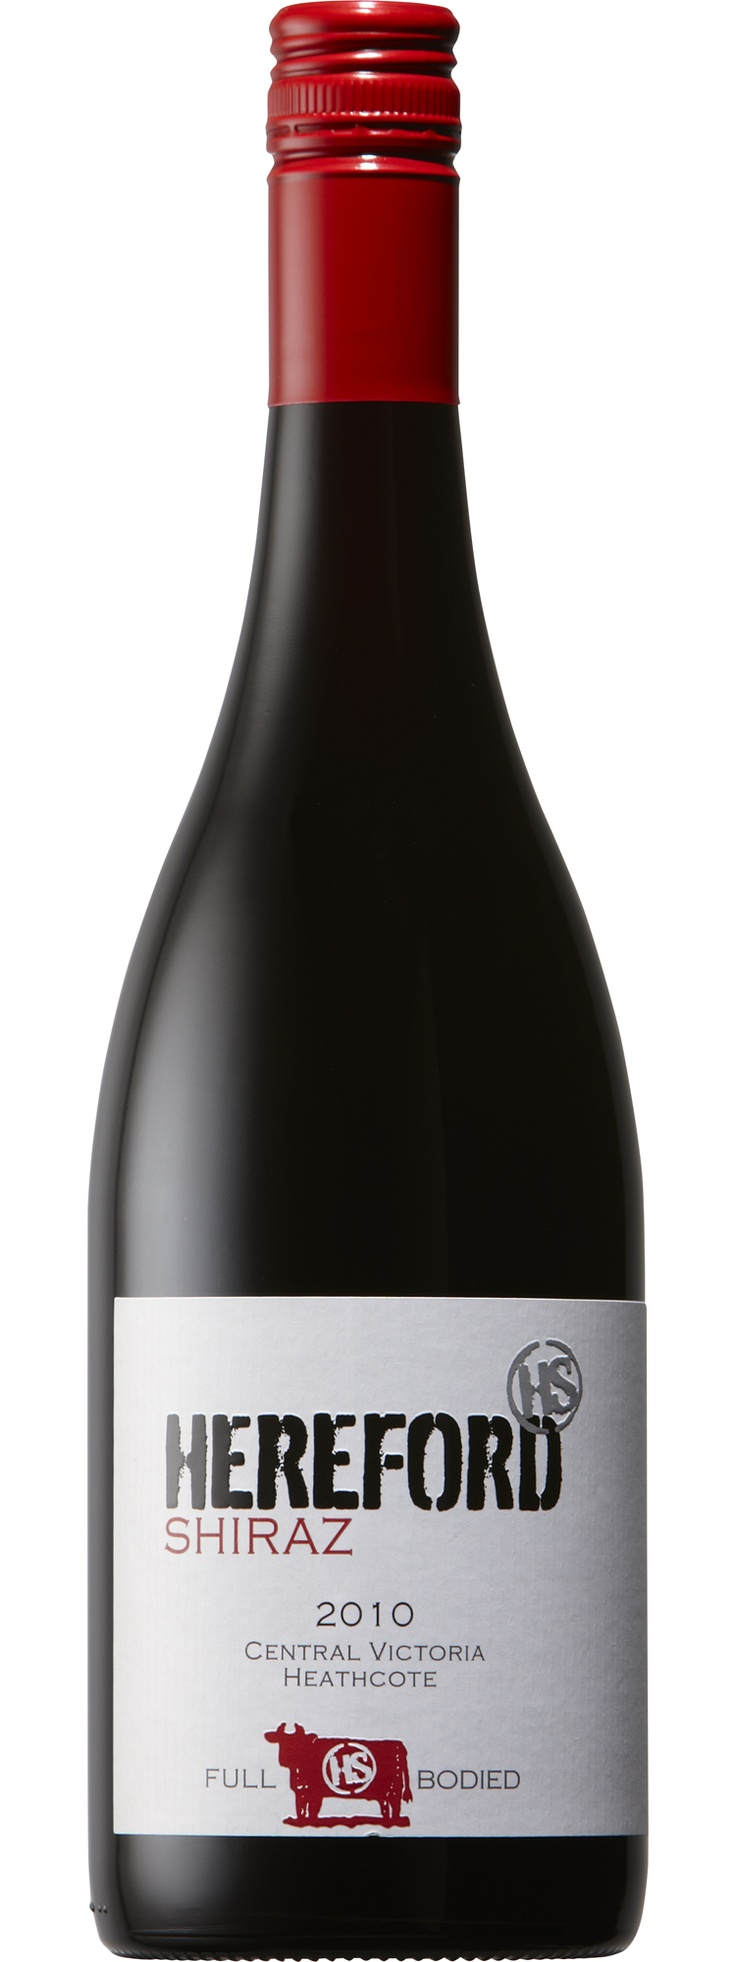 Hereford Shiraz | Dan Murphy's | Buy Wine, Champagne, Beer & Spirits Online